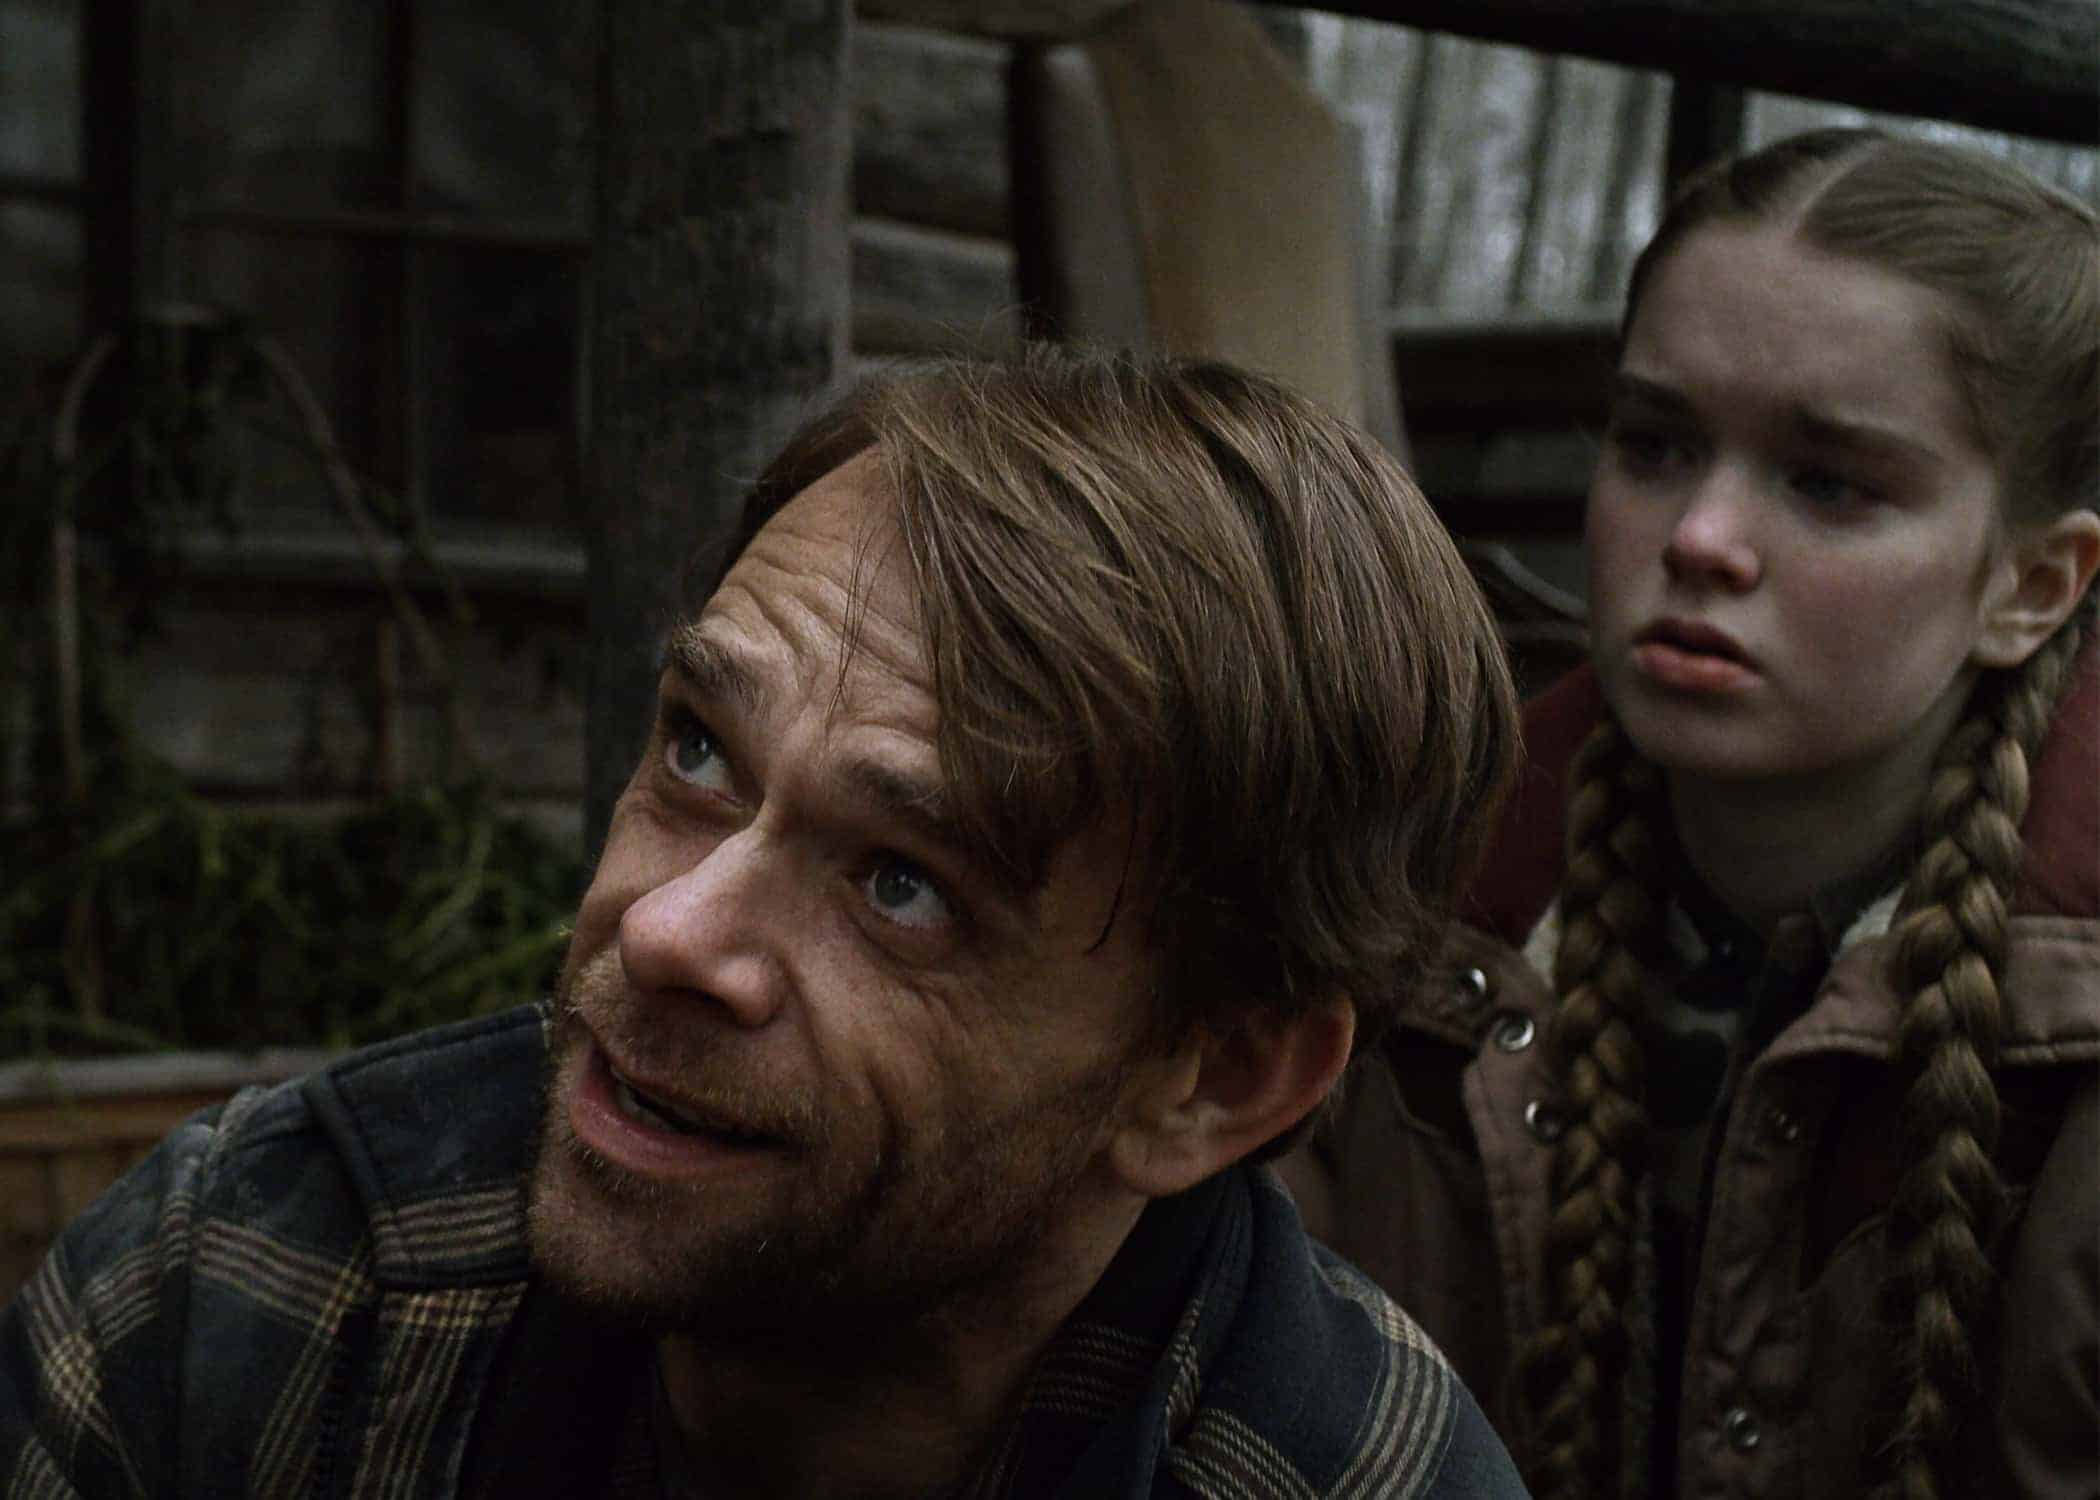 Nick Stahl and Summer H. Howell